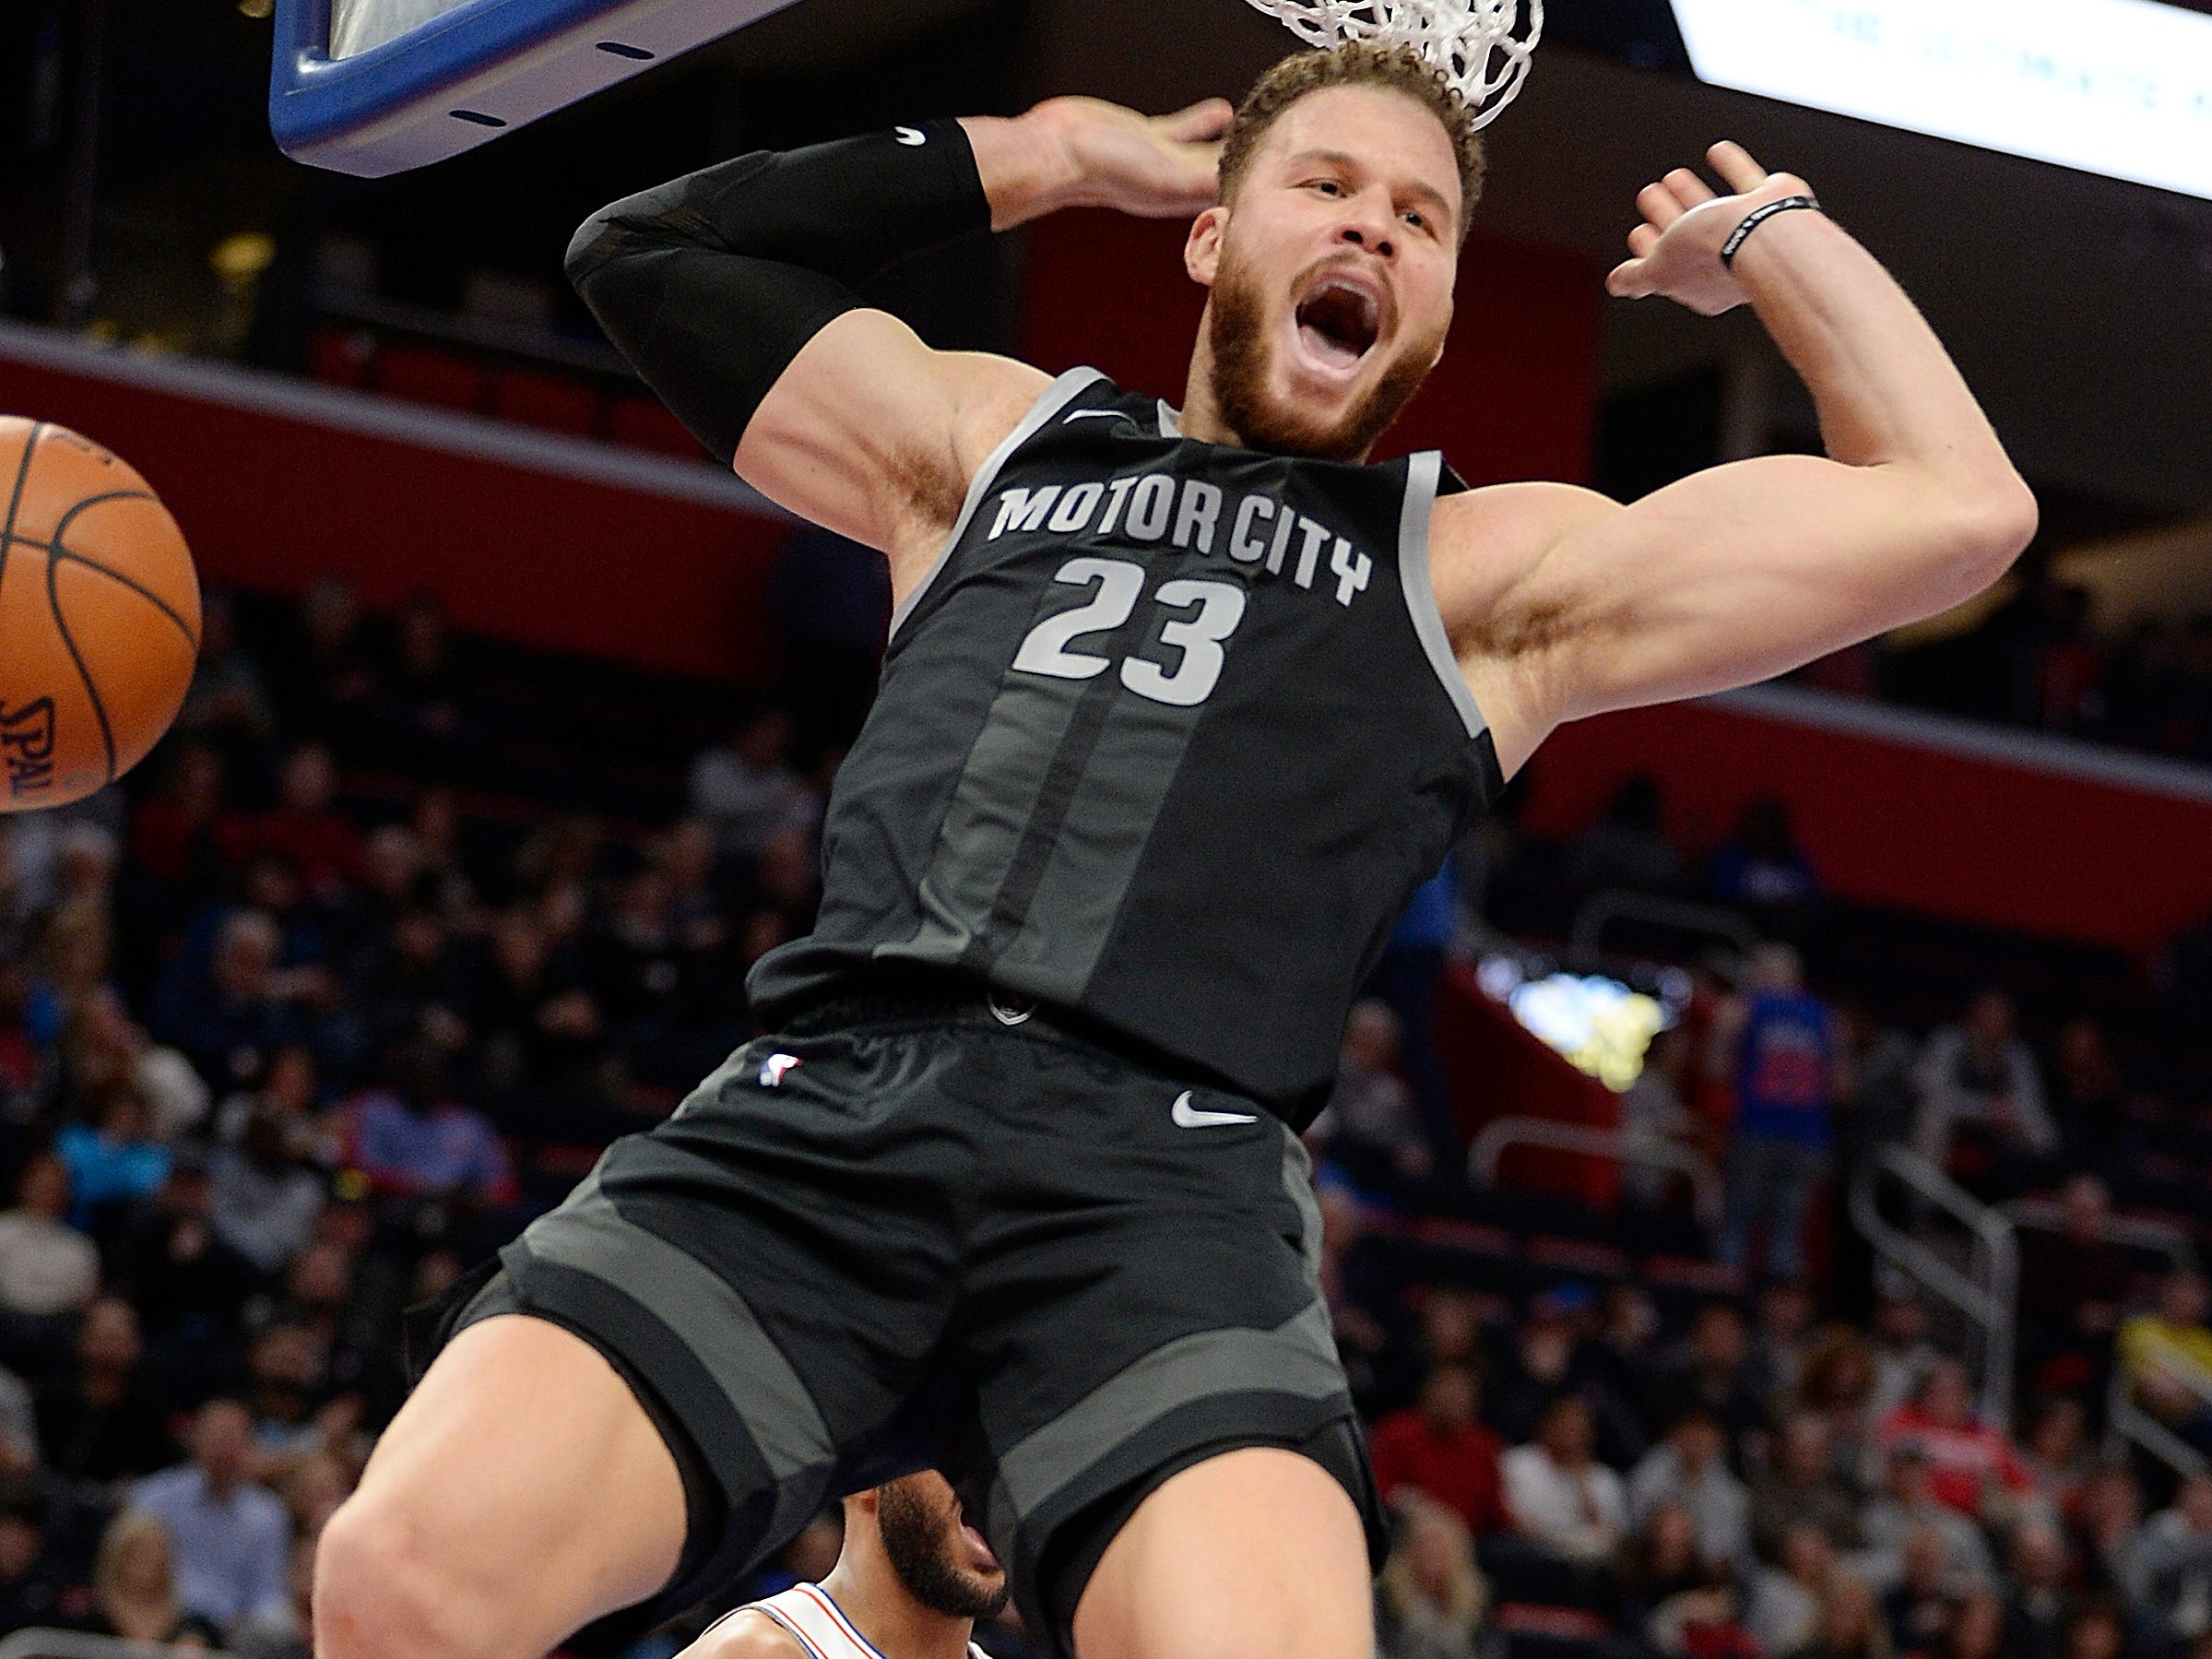 FORWARDS -- Blake Griffin -- Stats: 25.6 pts., 8.3 rebs., 5.3 assts., 36% 3FG in 39 games. Age: 29. The rumors of his career being on the decline were slightly exaggerated. Griffin is experiencing a resurgent season, with the best year of his career. He's evolved his game to become a point-power forward and has handled the increase in workload without issue. Grade: A-